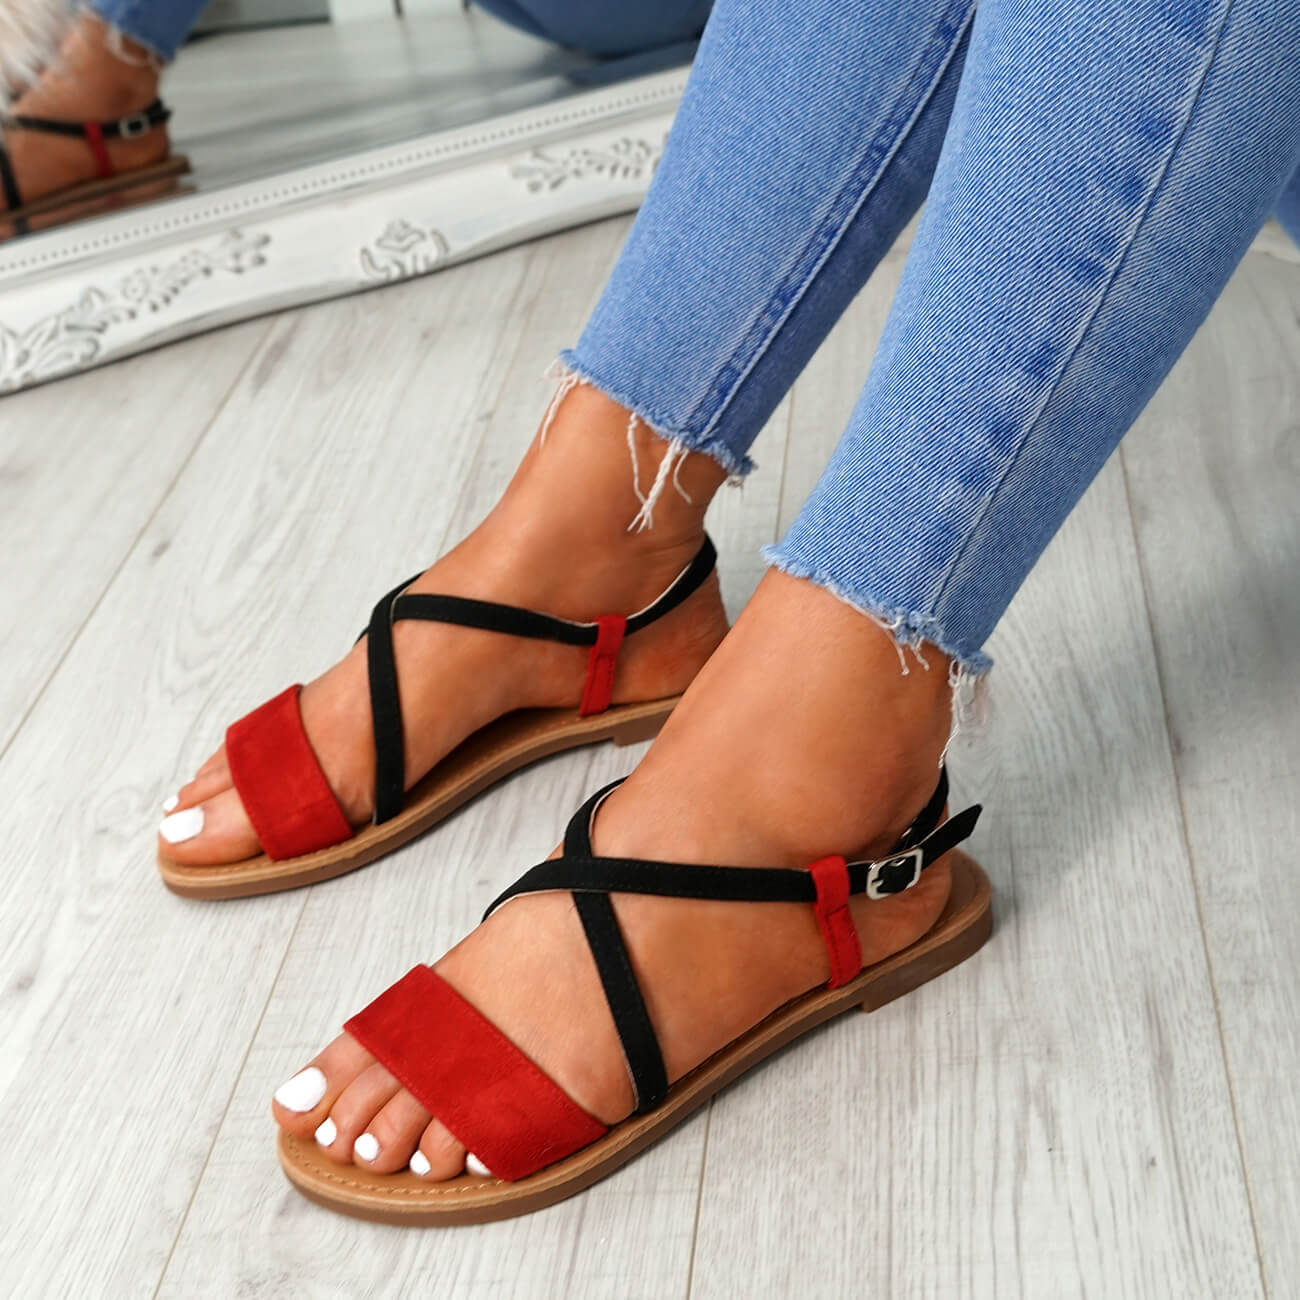 WOMENS-LADIES-ANKLE-STRAP-PEEP-TOE-FLAT-SANDALS-COMFY-SUMMER-SHOES-SIZE thumbnail 20